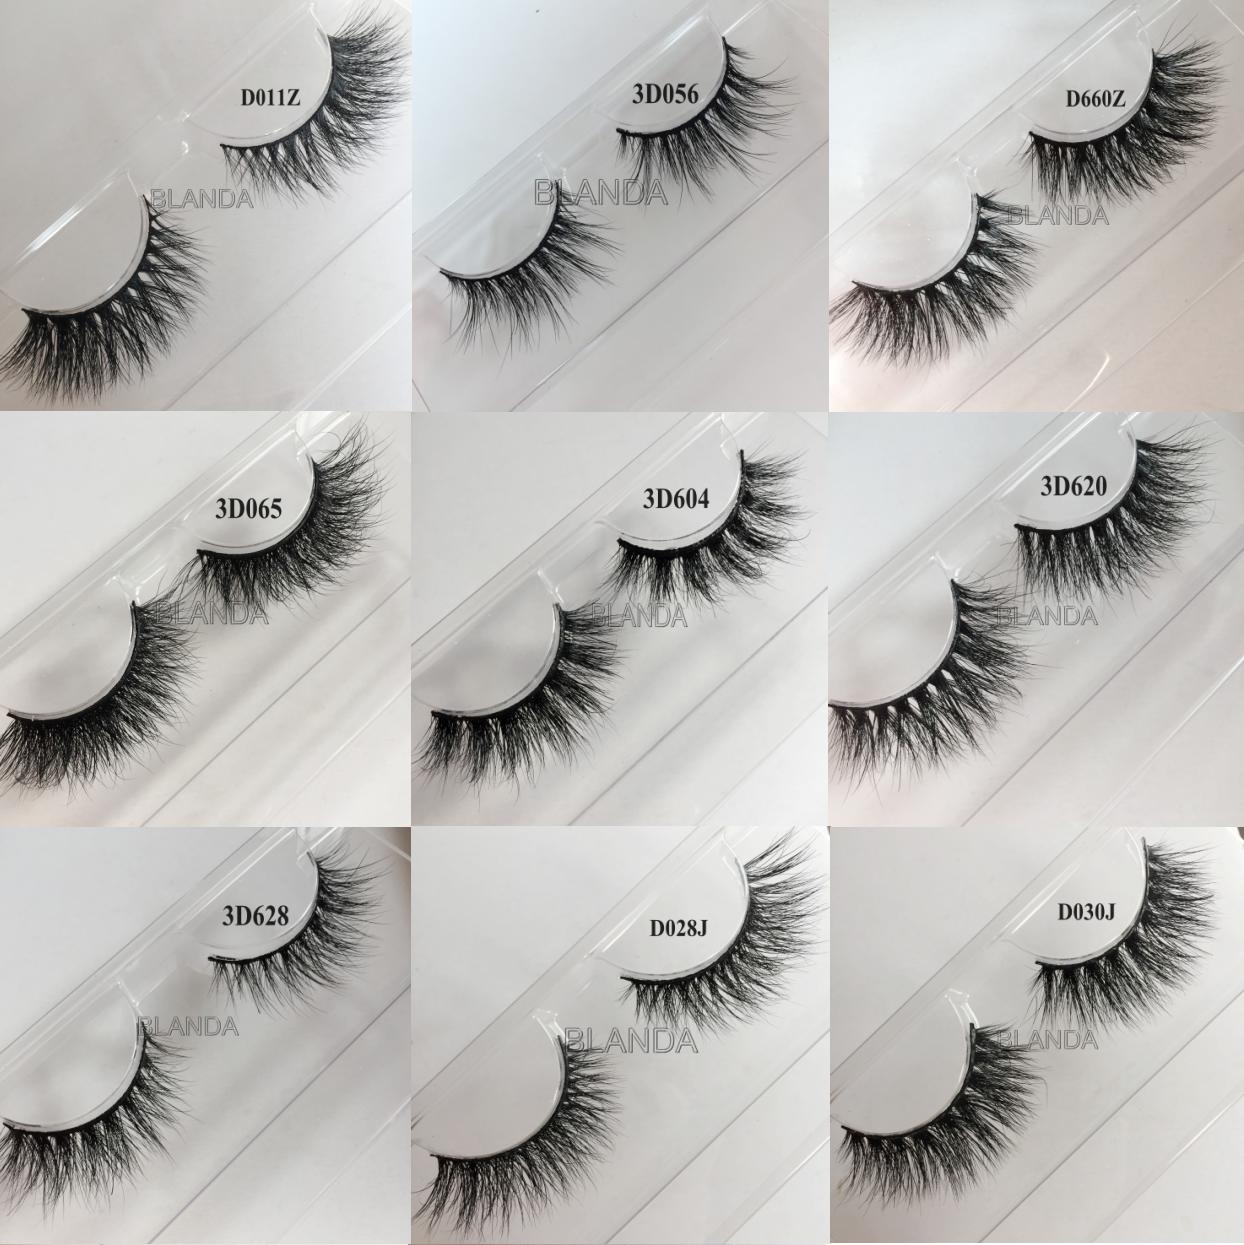 Real 3D Mink Eyelashes False Eyelashes Lashes with Great Quality and Perfect Dramatic Lash Style